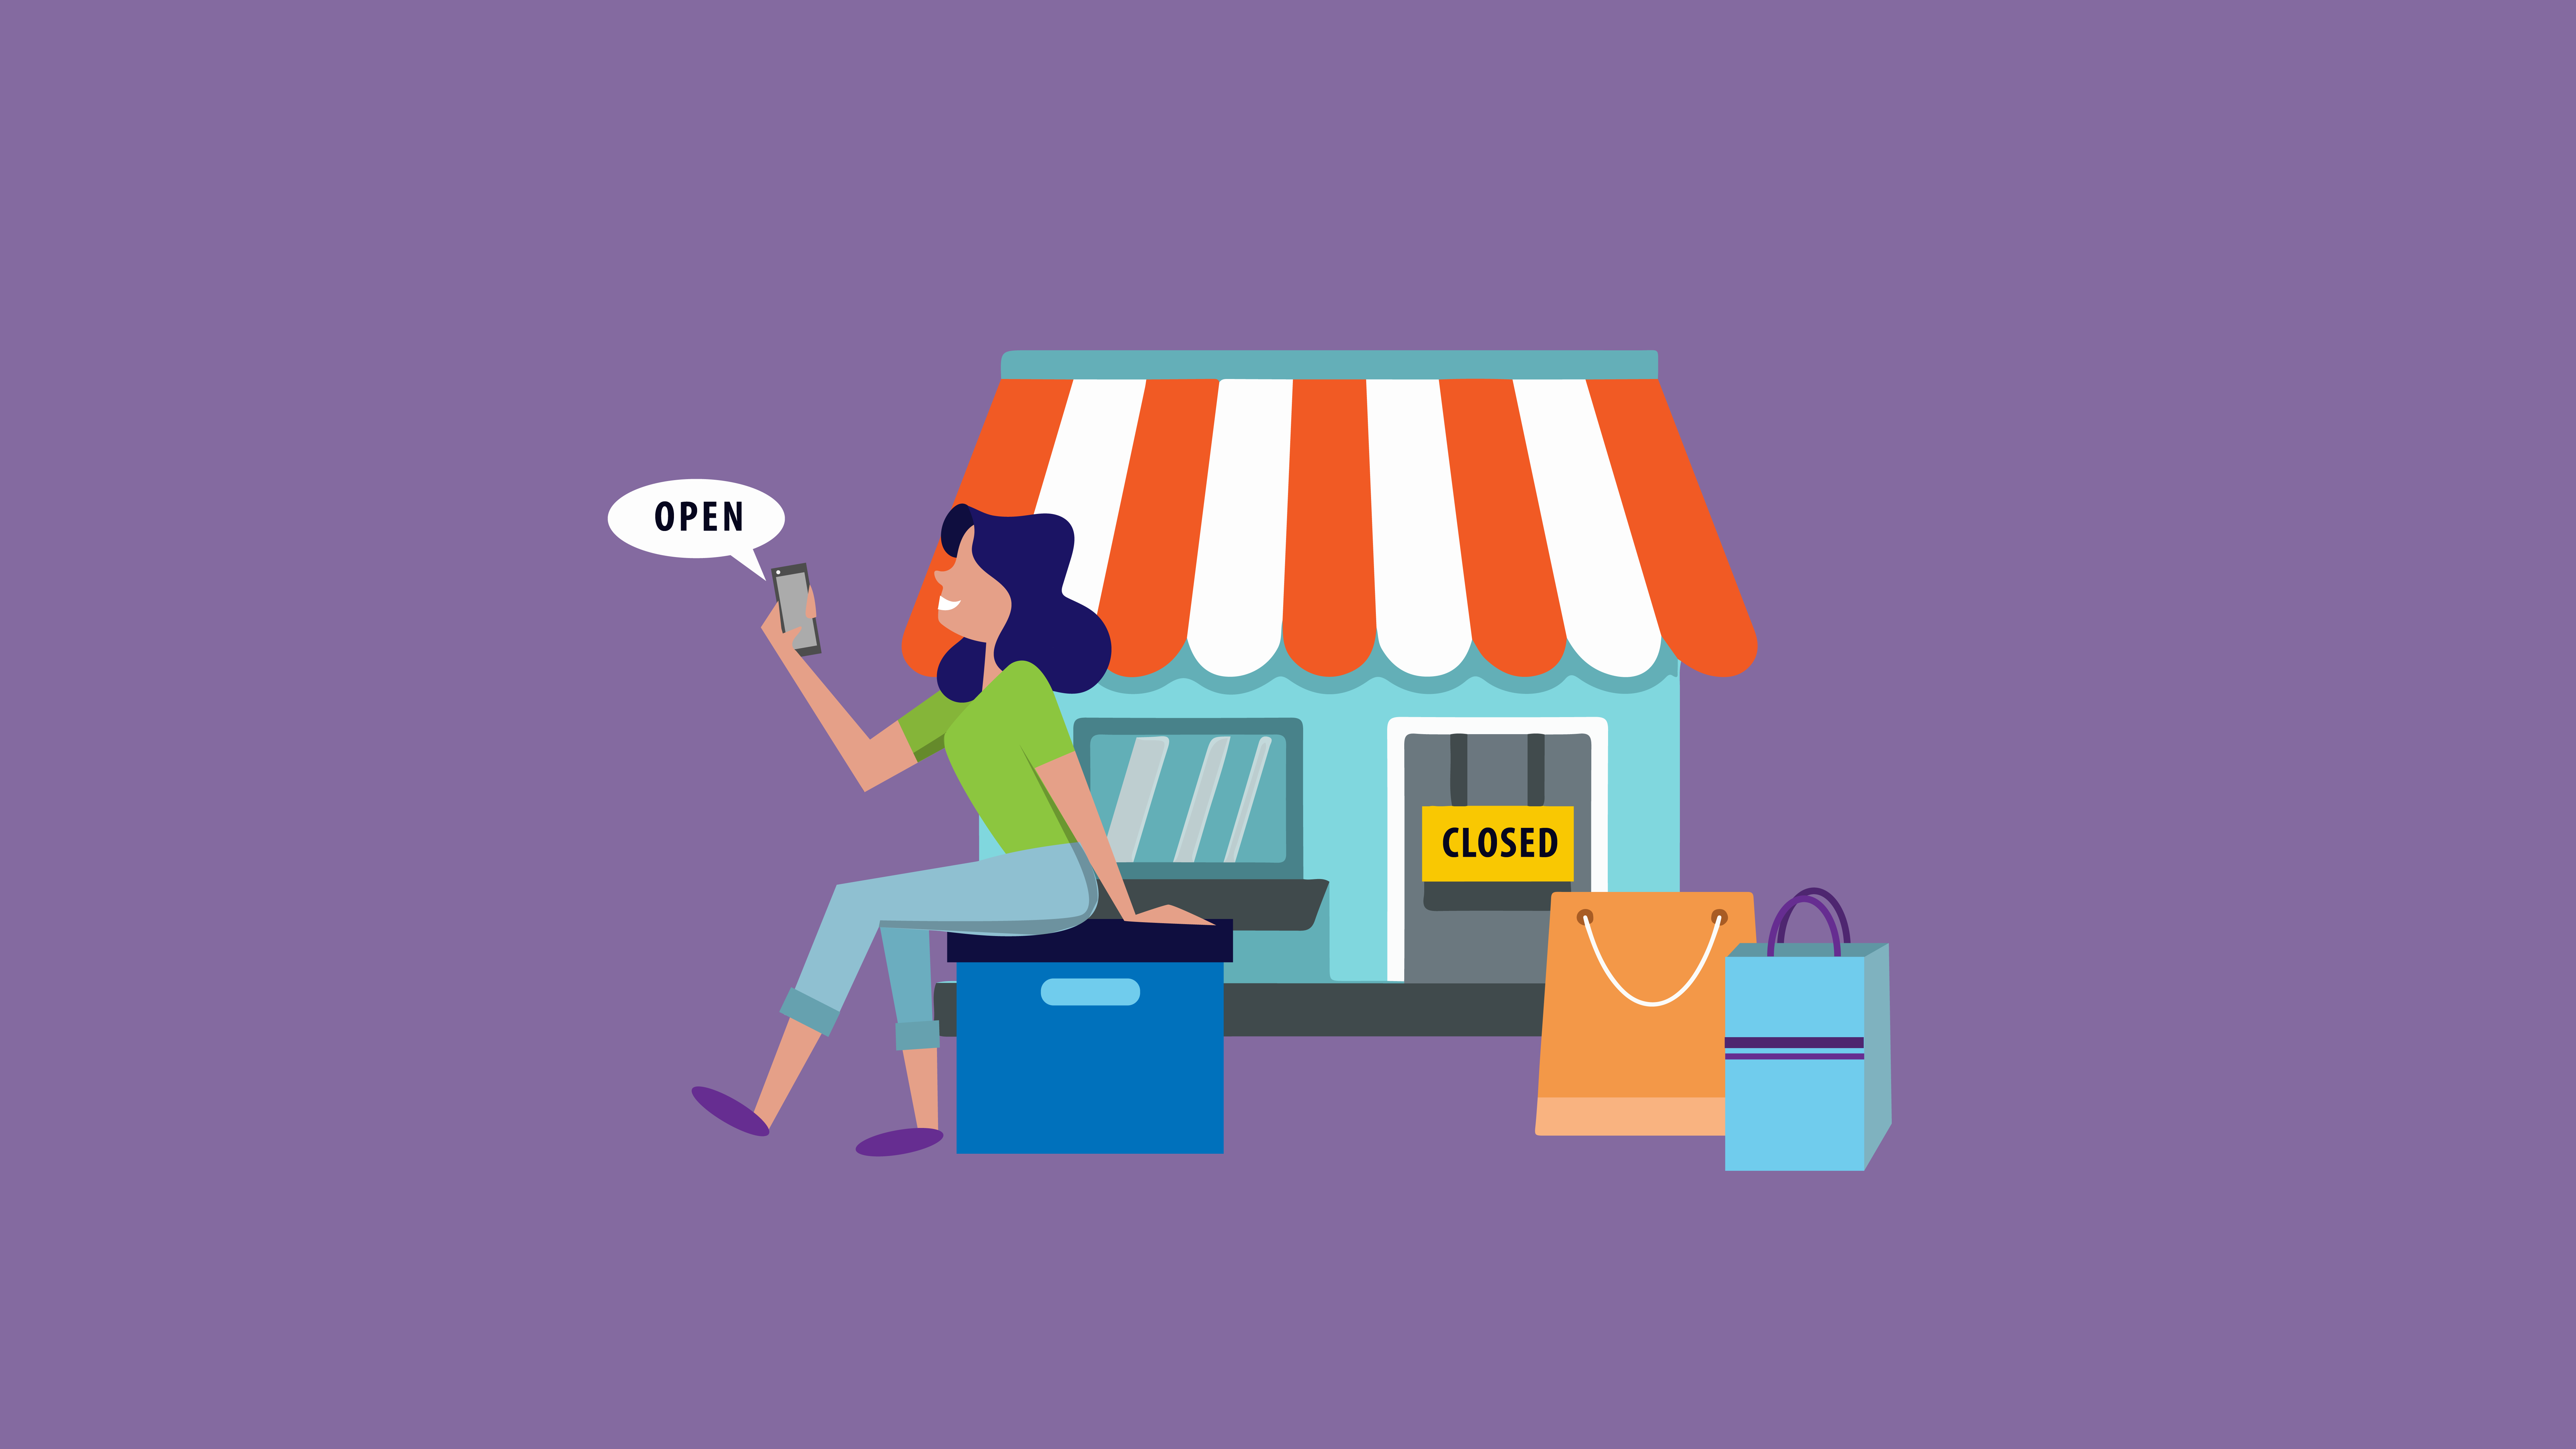 Multichannel selling will help you reduce risks by not relying on one single entity of income or revenue. Combine online and offline to maximize your profits!